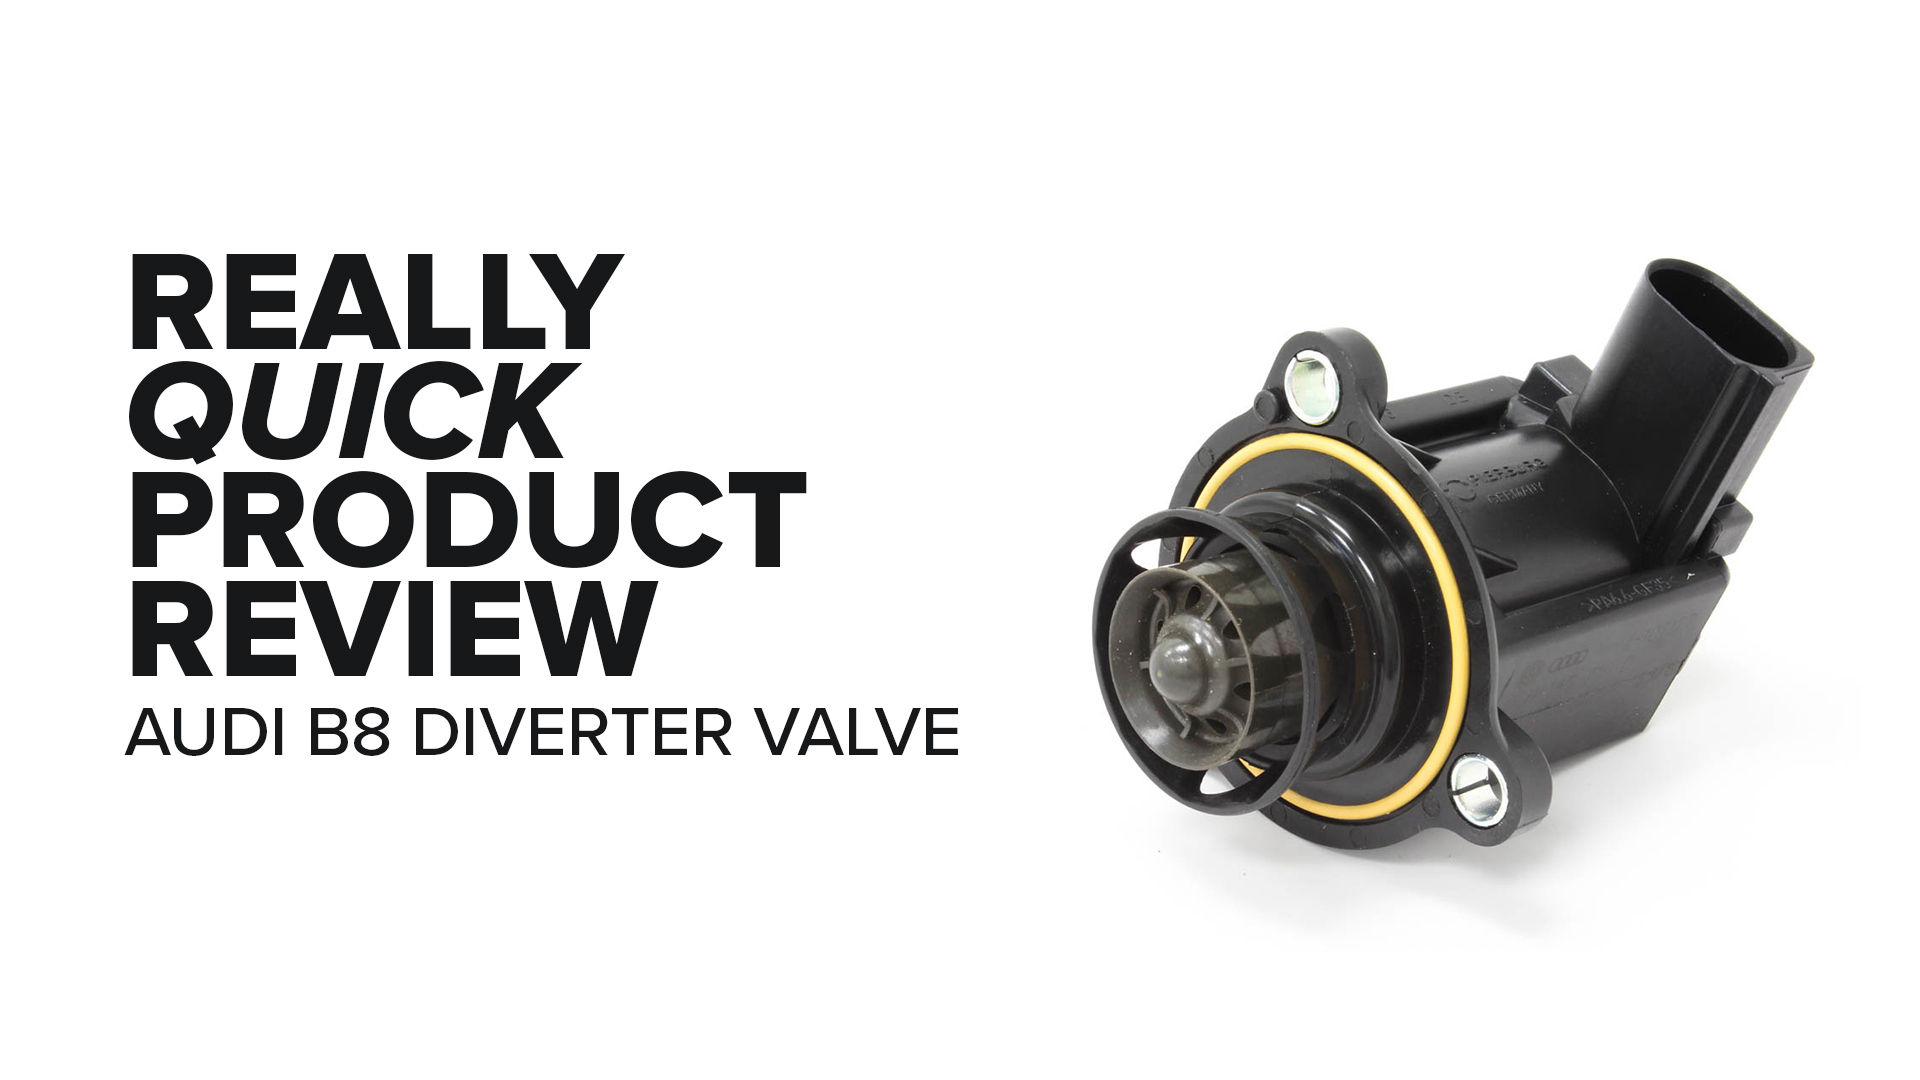 Audi B8 & Volkswagen 2.0T (A4, GTI, Q5 & More) Turbo Diverter Valve - Symptoms And Product Review